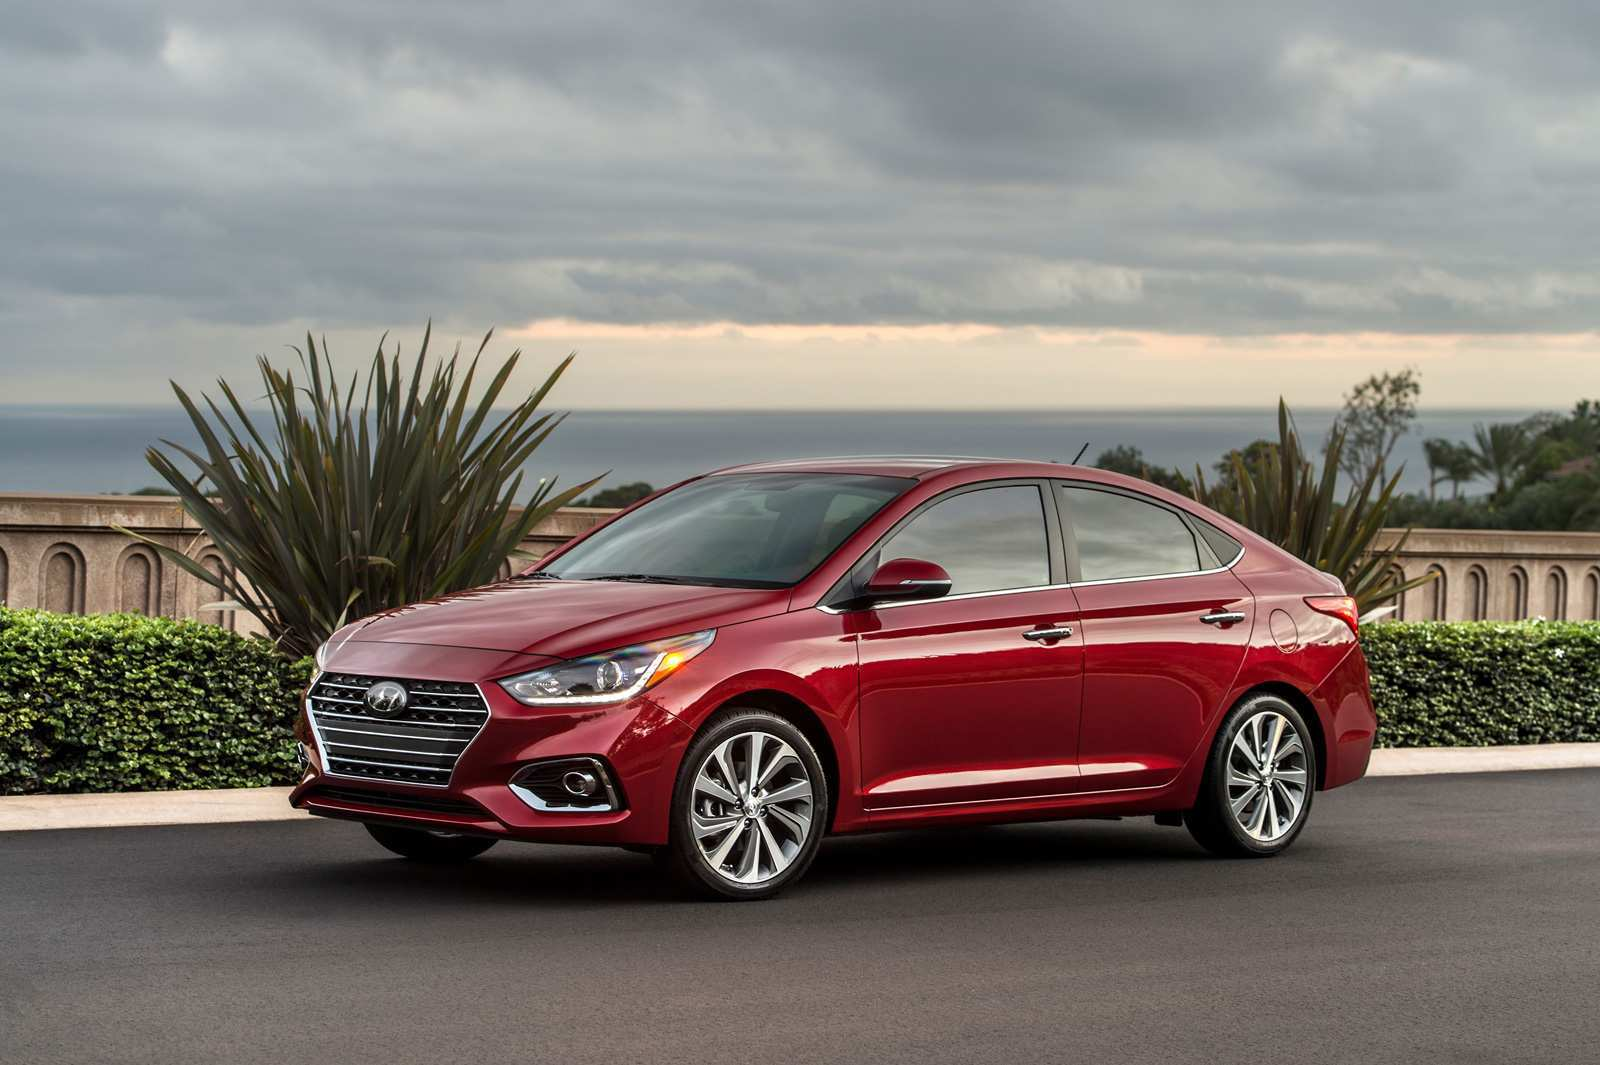 21 New 2020 Hyundai Accent 2018 Release by 2020 Hyundai Accent 2018